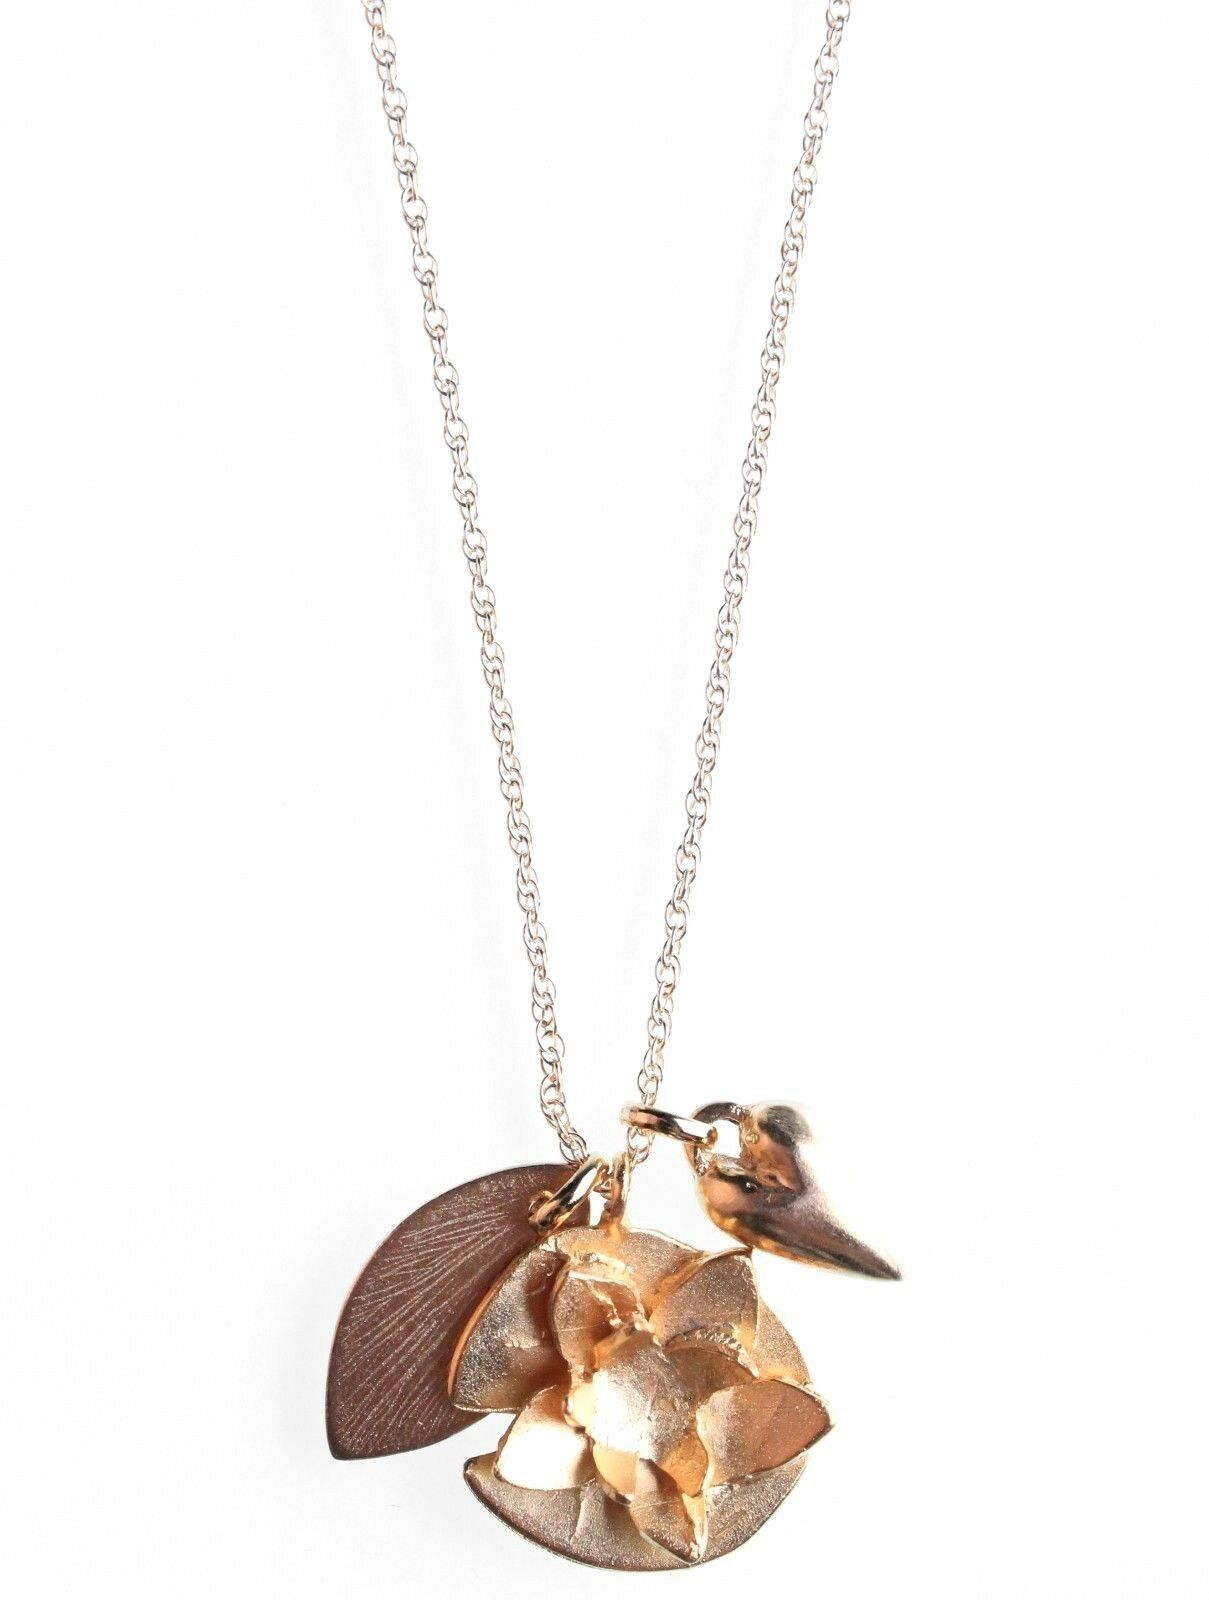 USA Fabriqué Wendy Mink New York Or Collier Pendentif Nwt